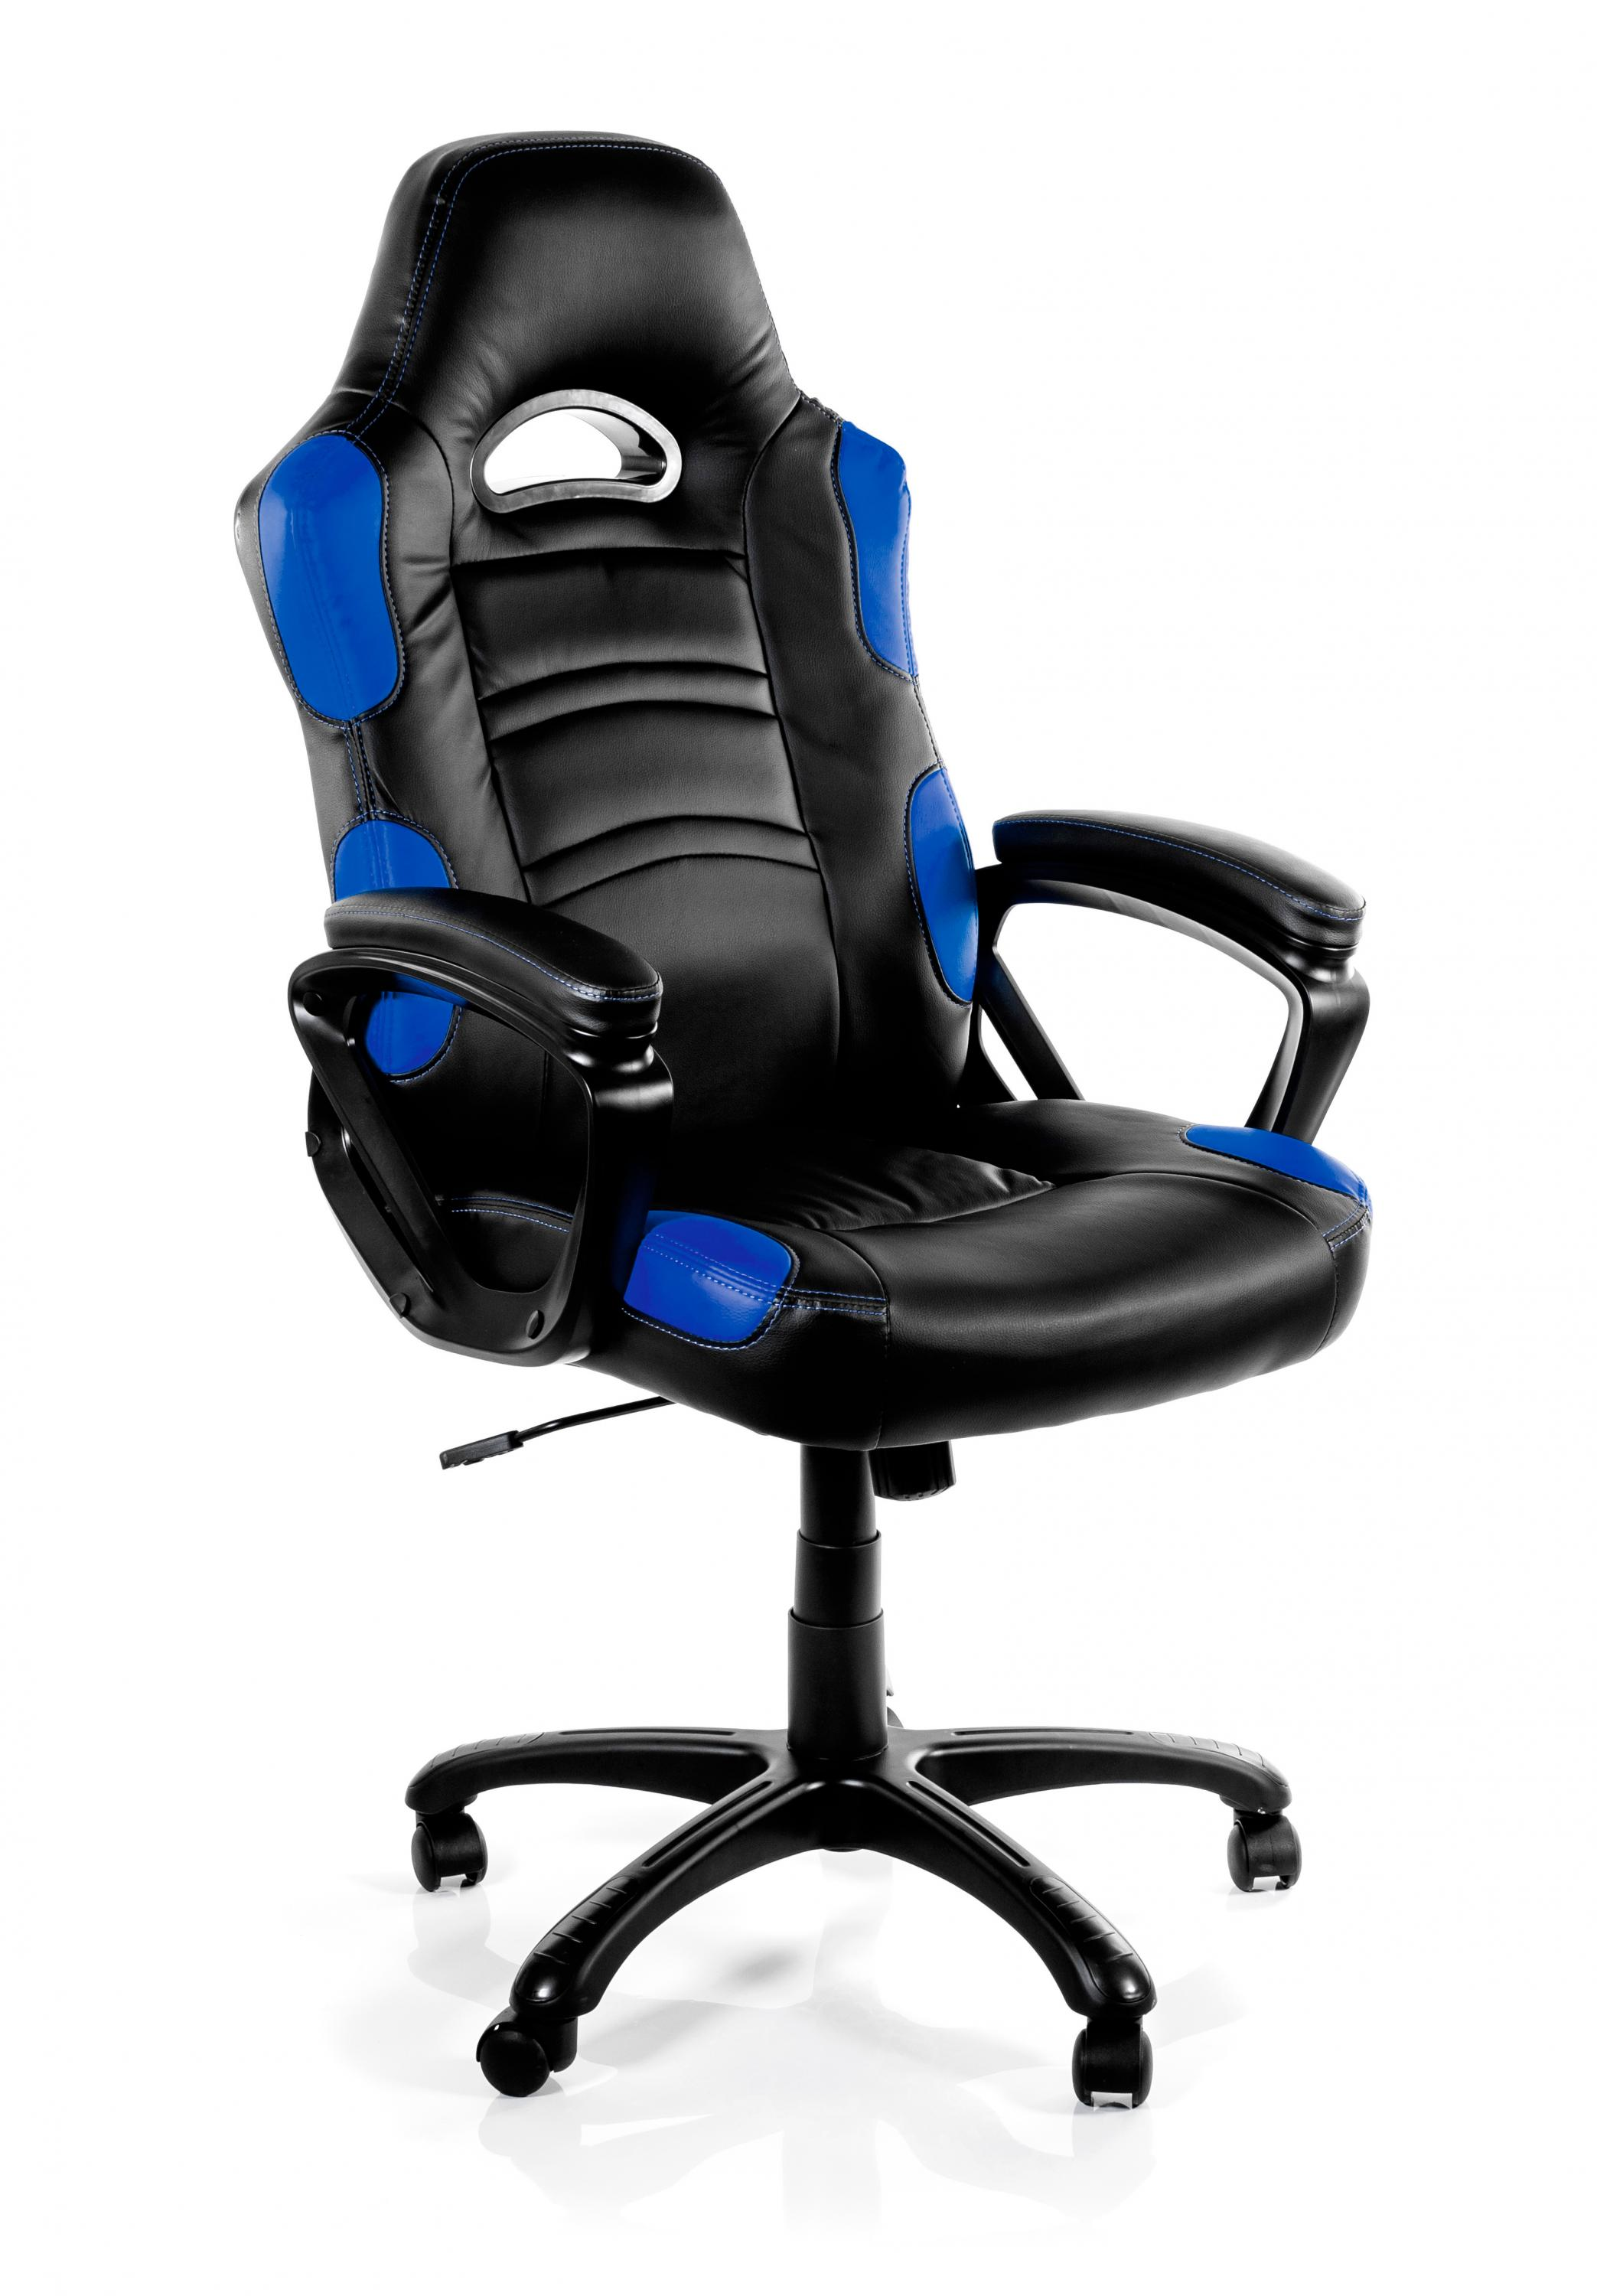 Comfortable Ergonomic Gaming Computer Chair High Elastic